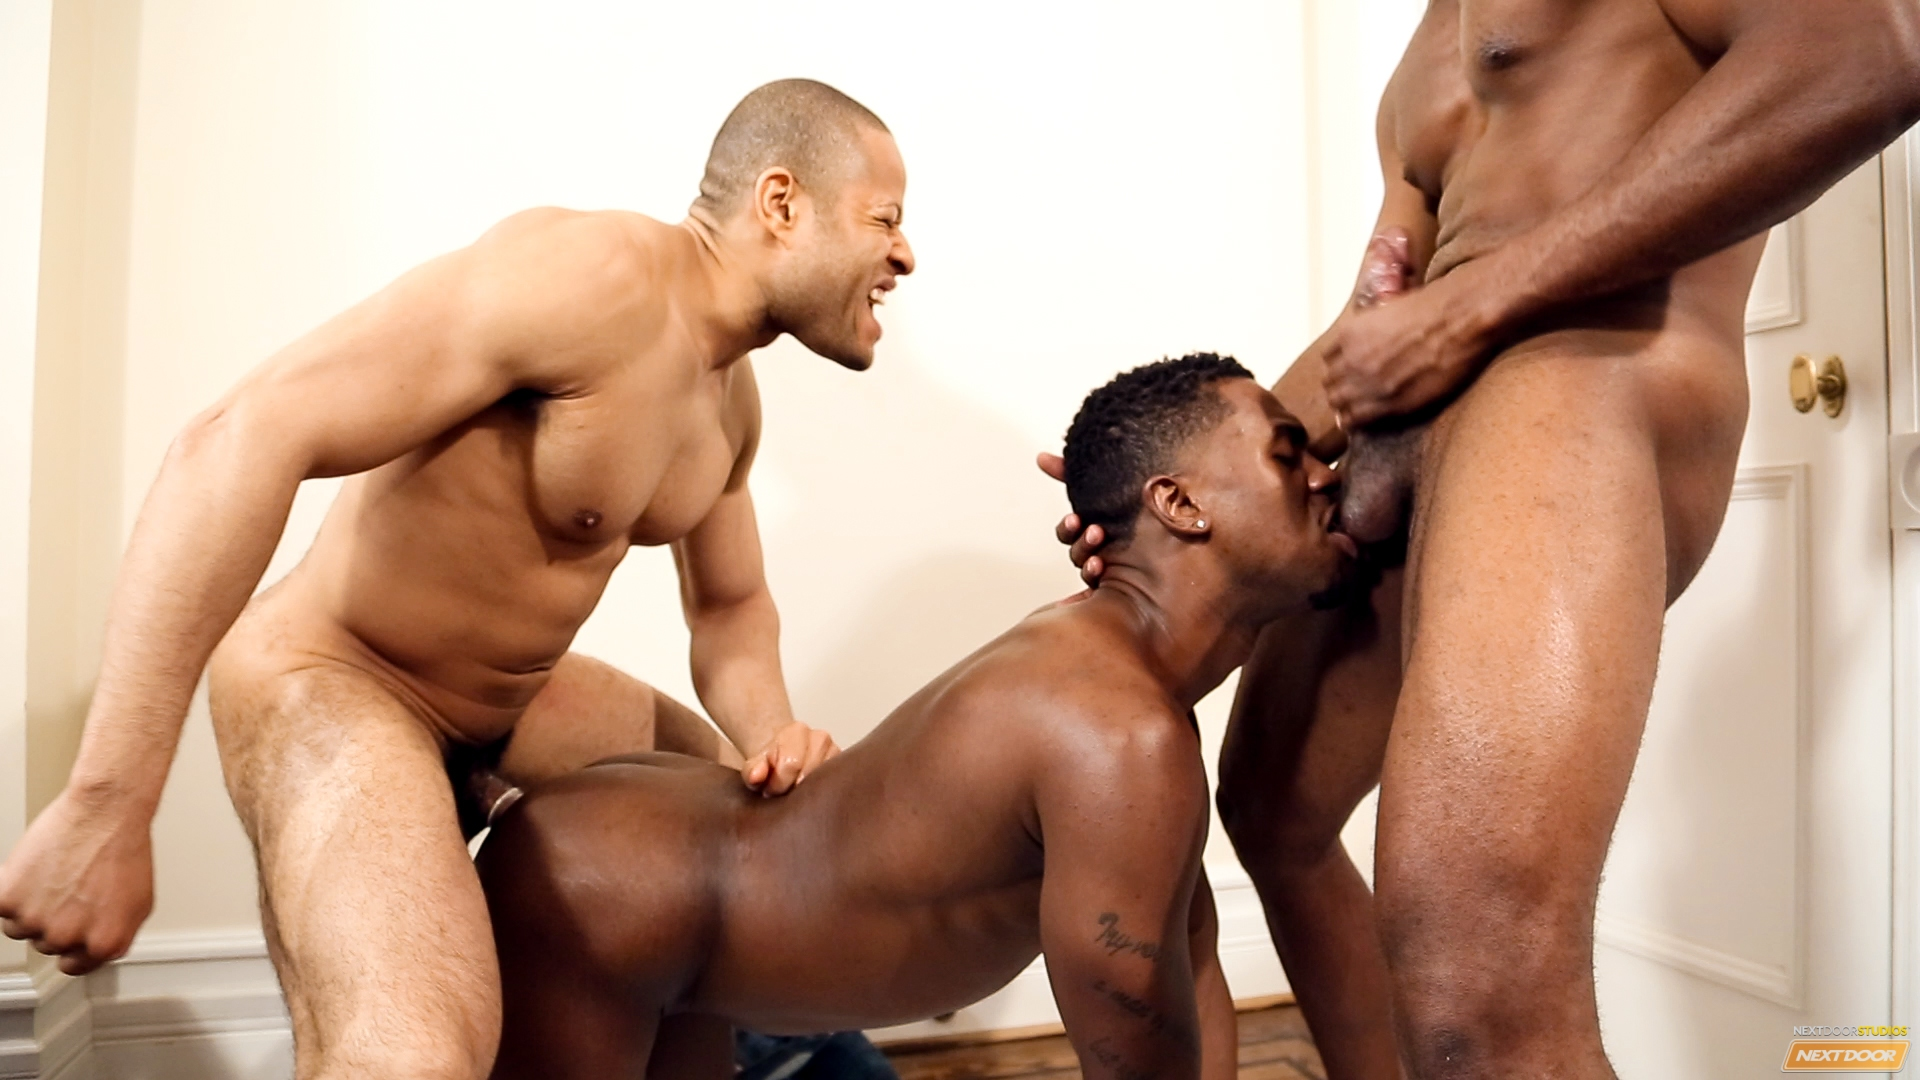 fuck my mouth gay porn